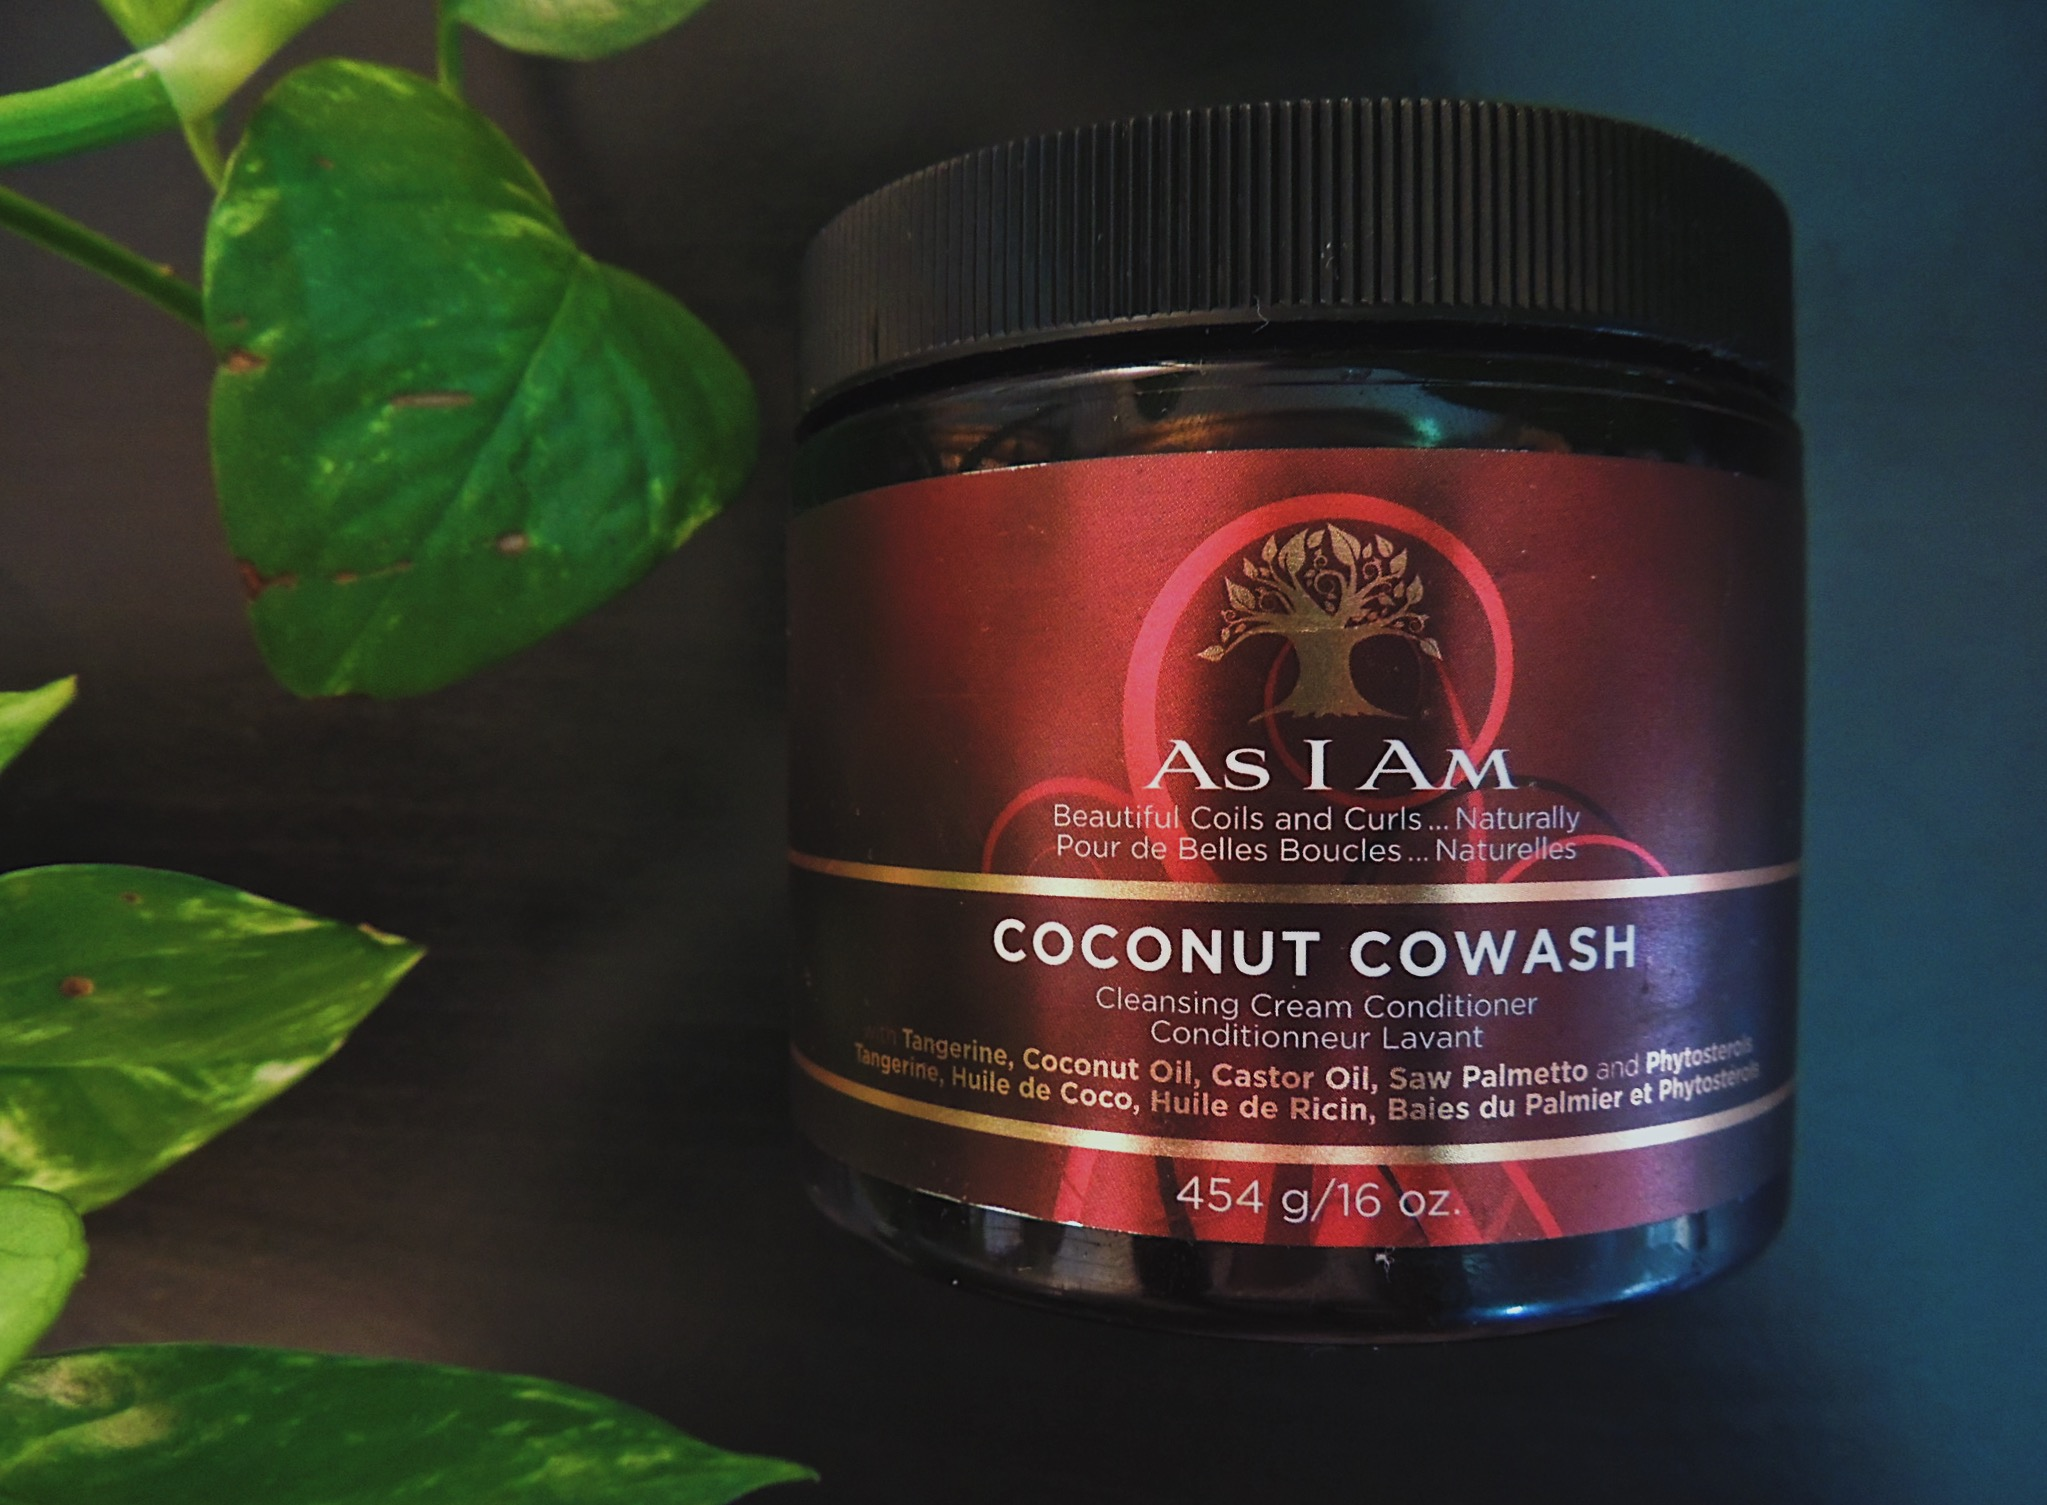 LCM-photography-natural hair products-as-i-am-coconut-cowash